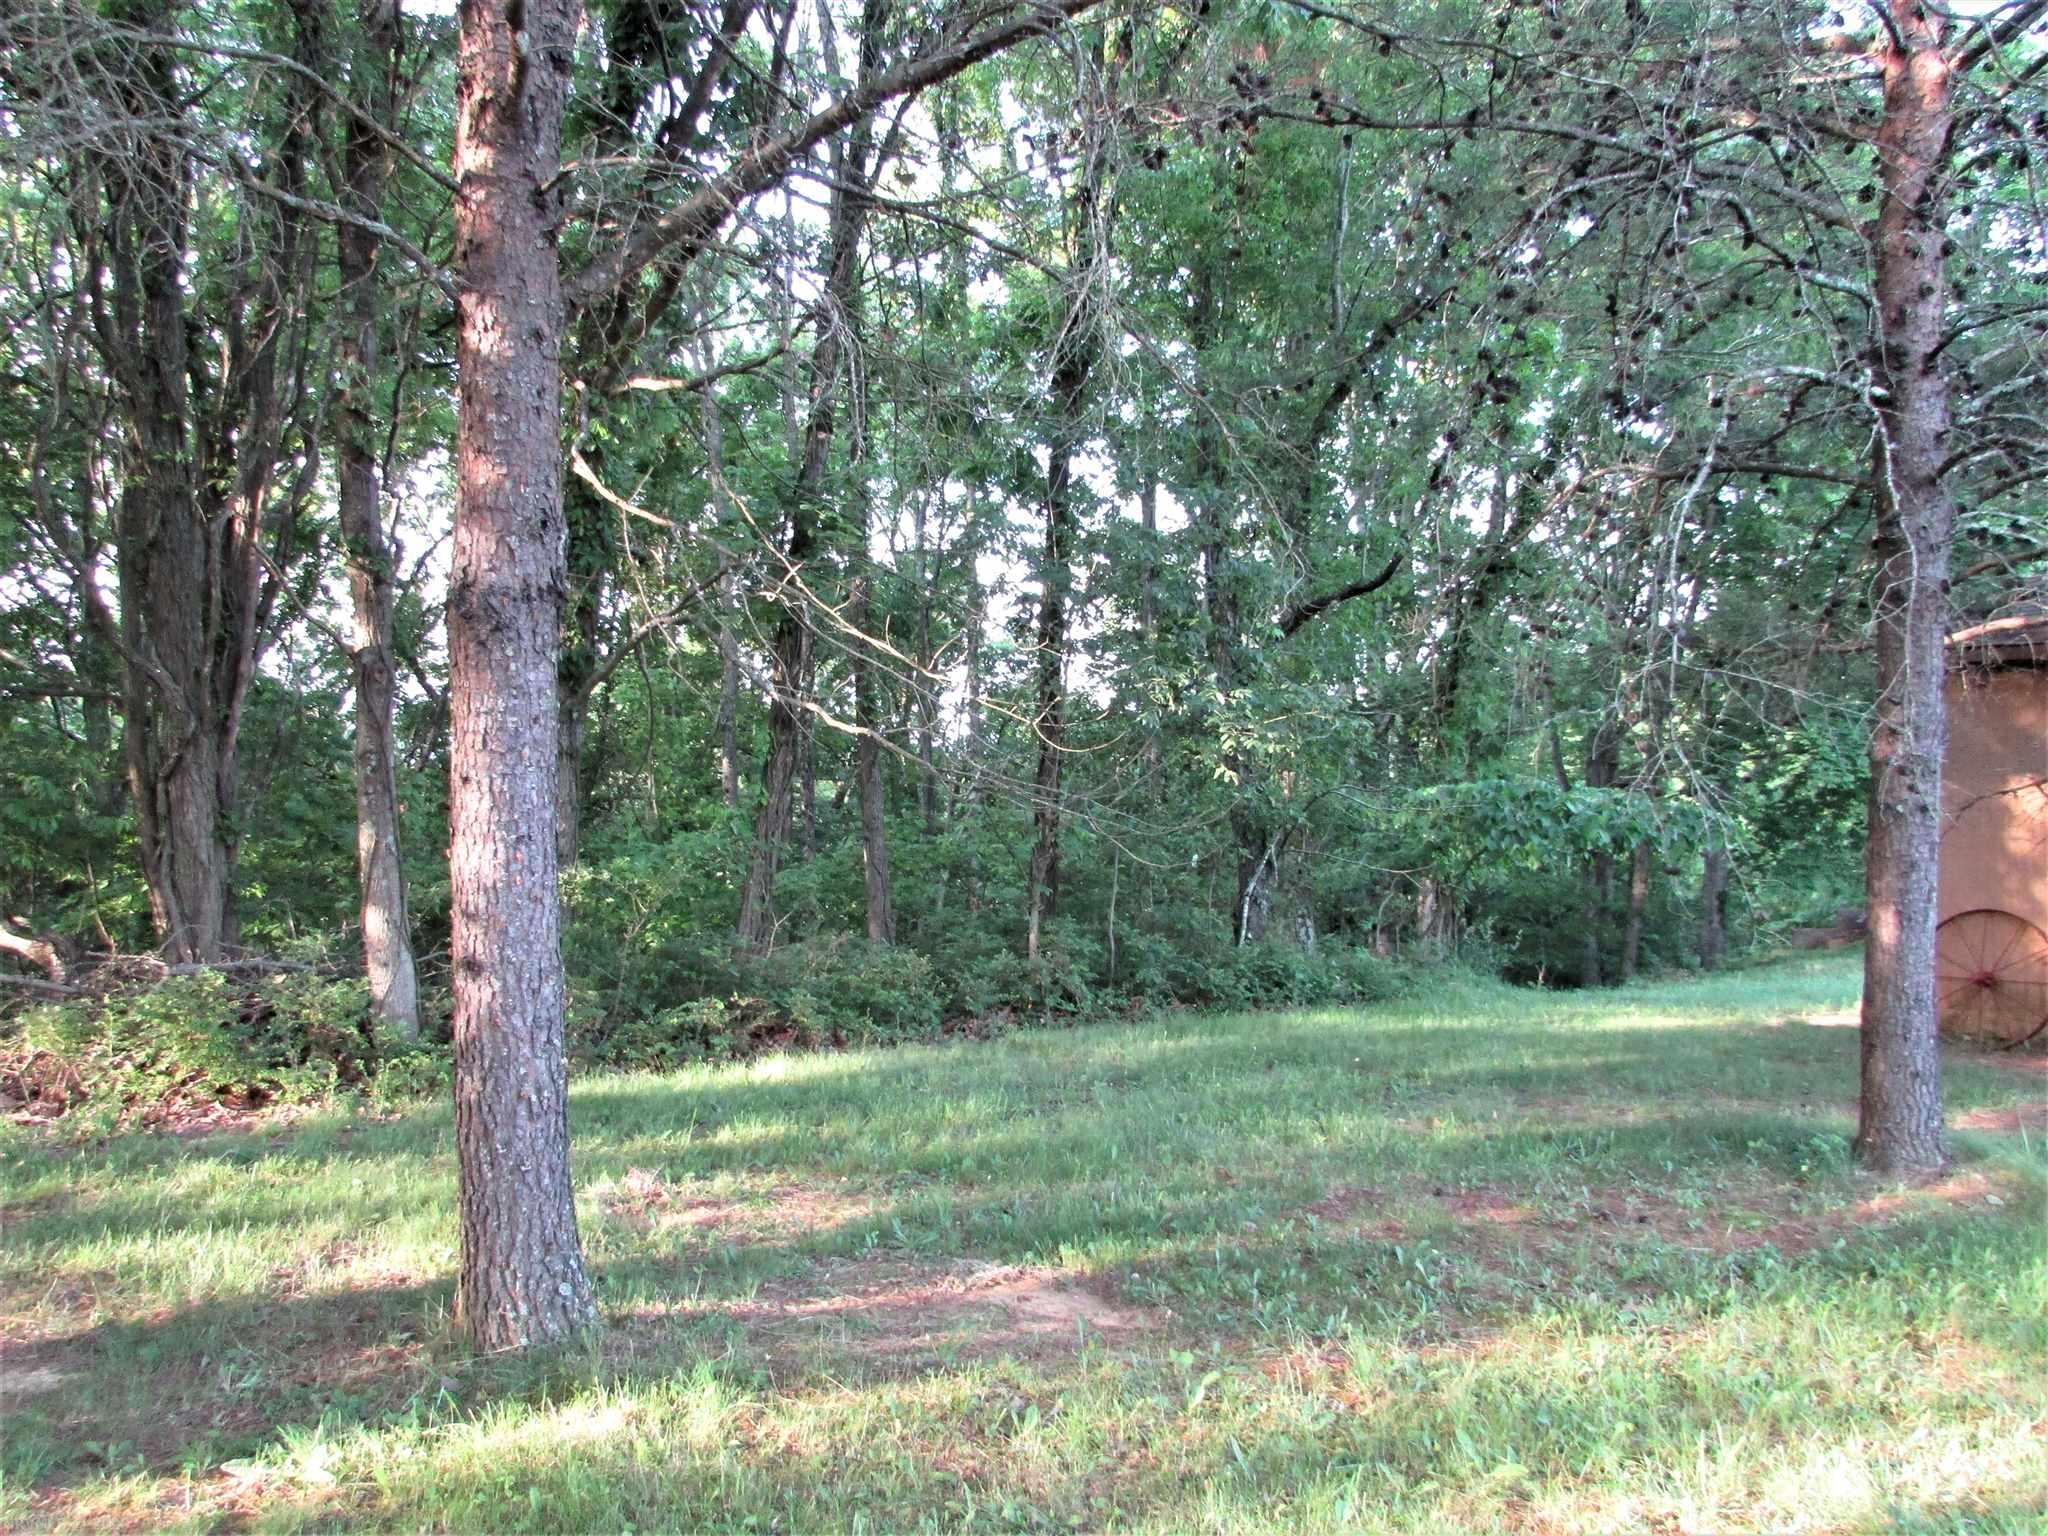 Wooded building lot with mountain views located in Mountain Top Subdivision. Conveniently located to NRV and Roanoke County. The lot has a gentle slope which offers more diverse building options and usable space for your new home.